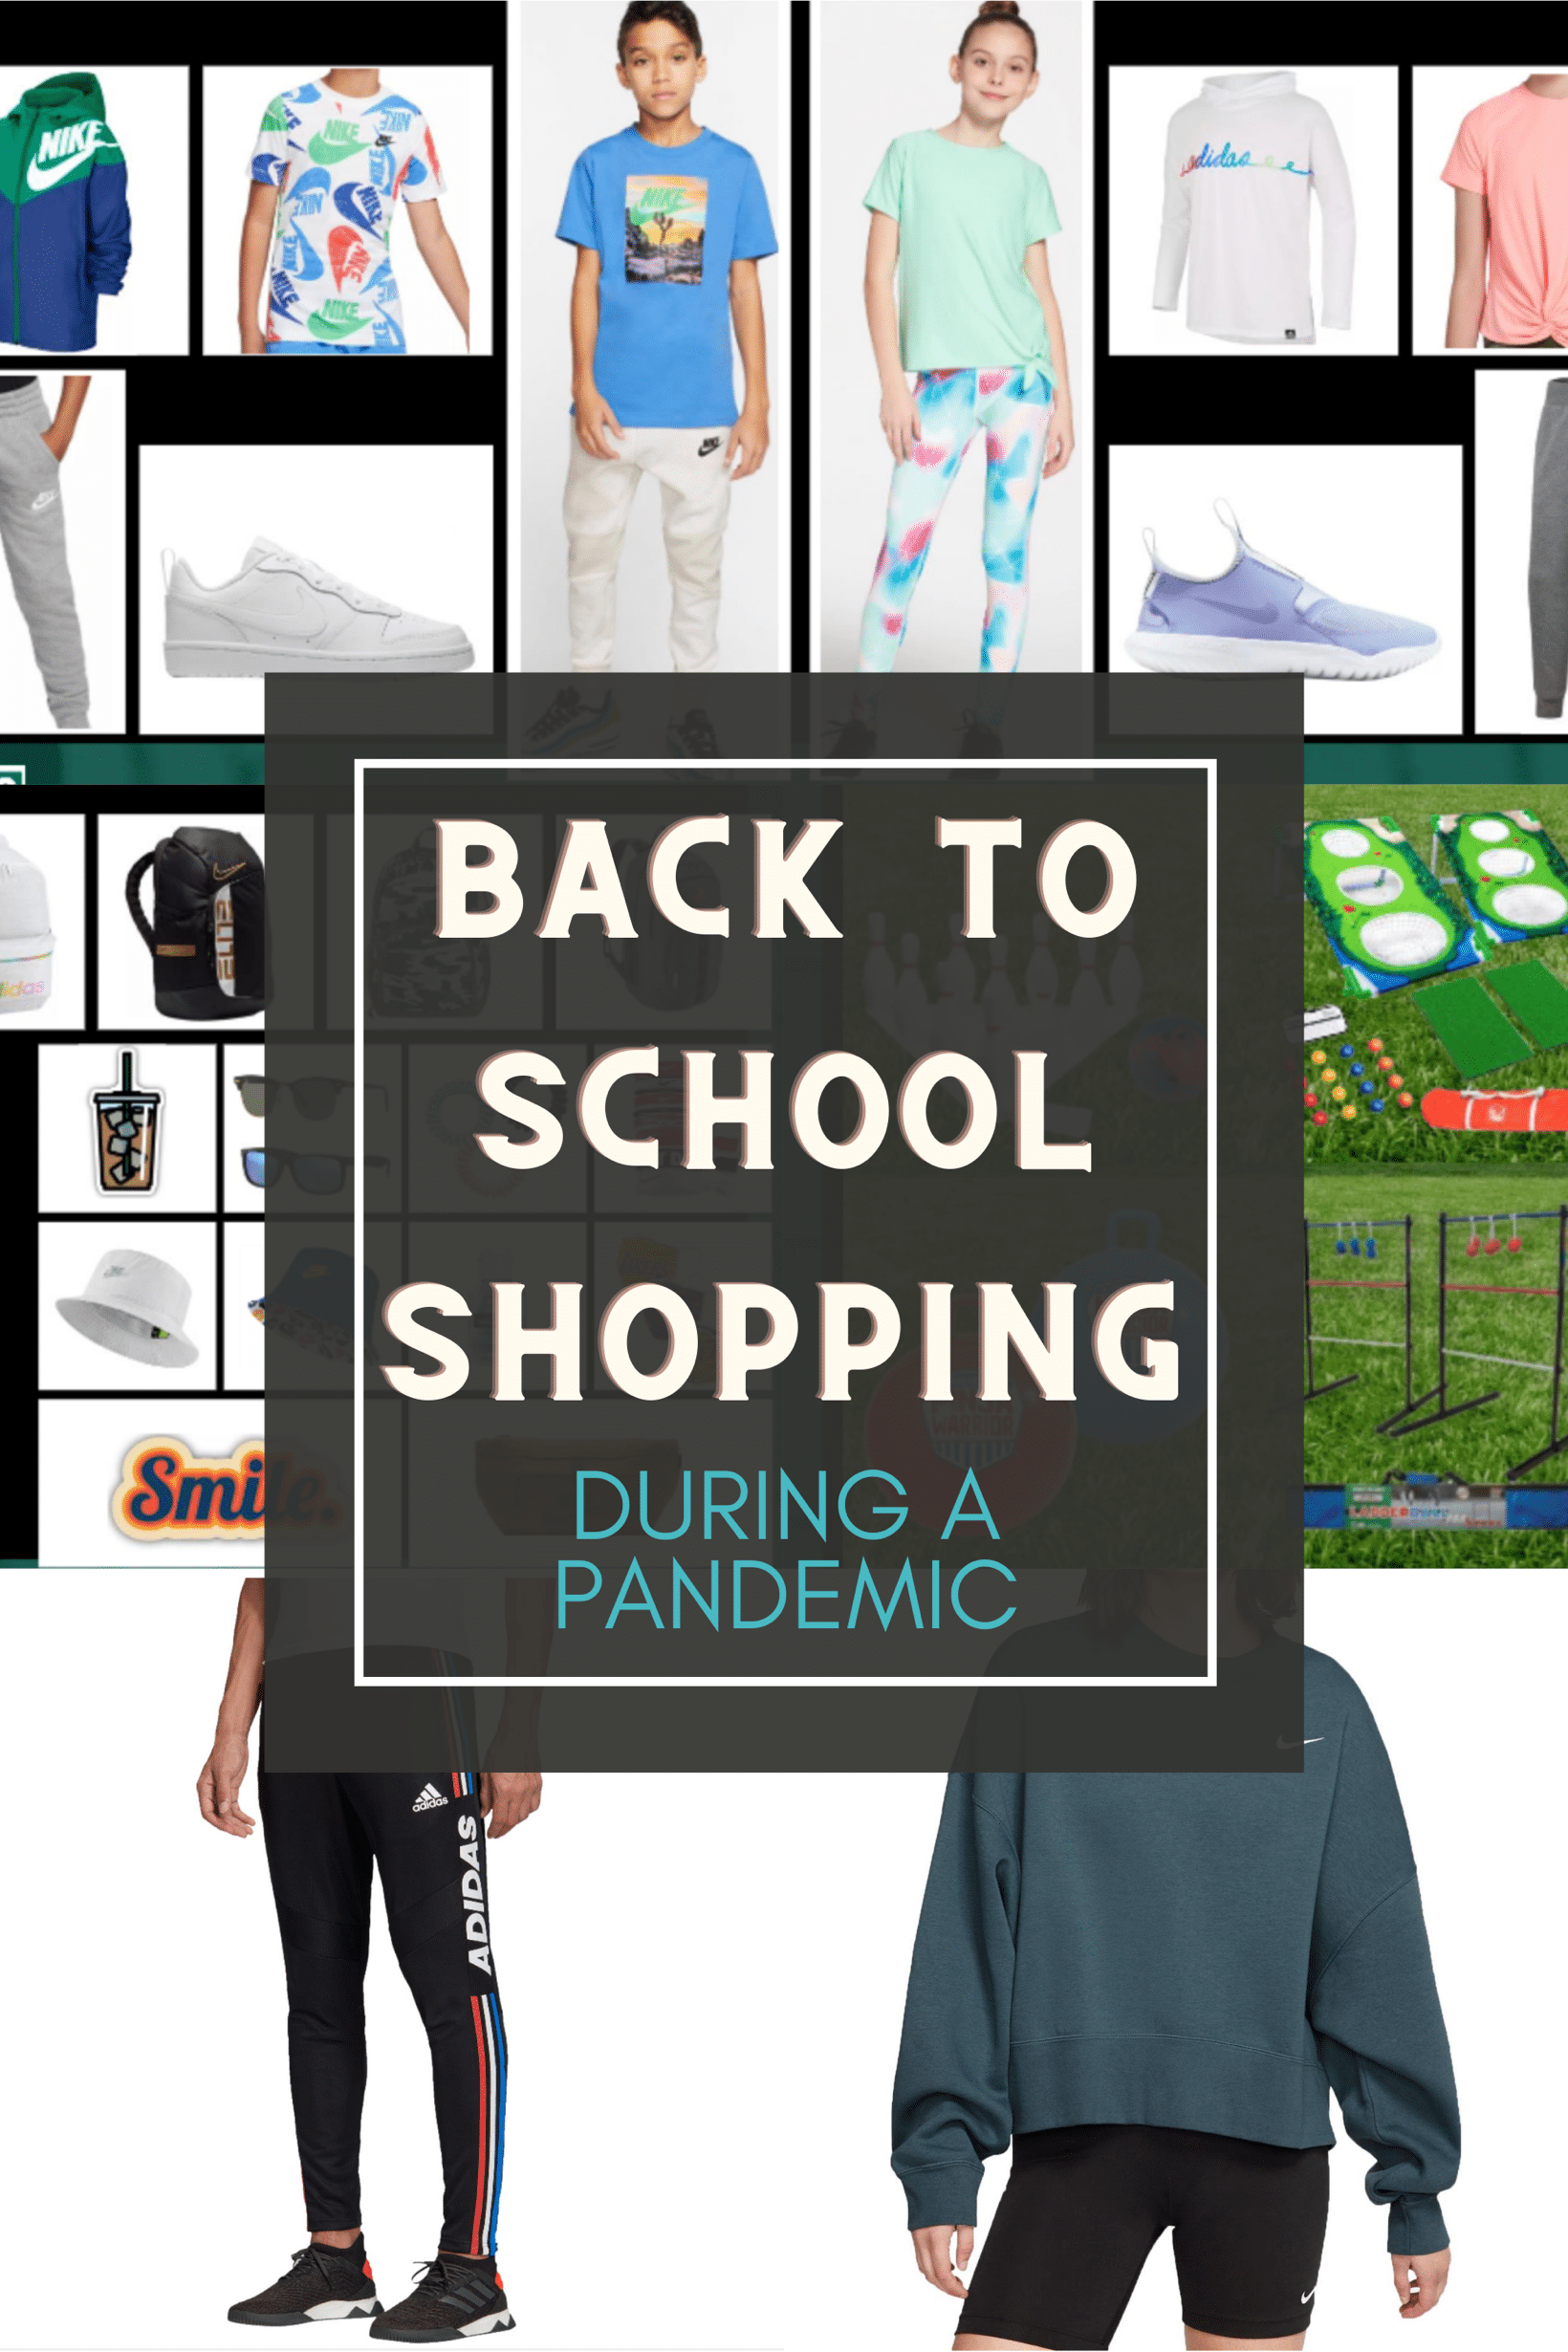 Dicks back to school pandemic shopping